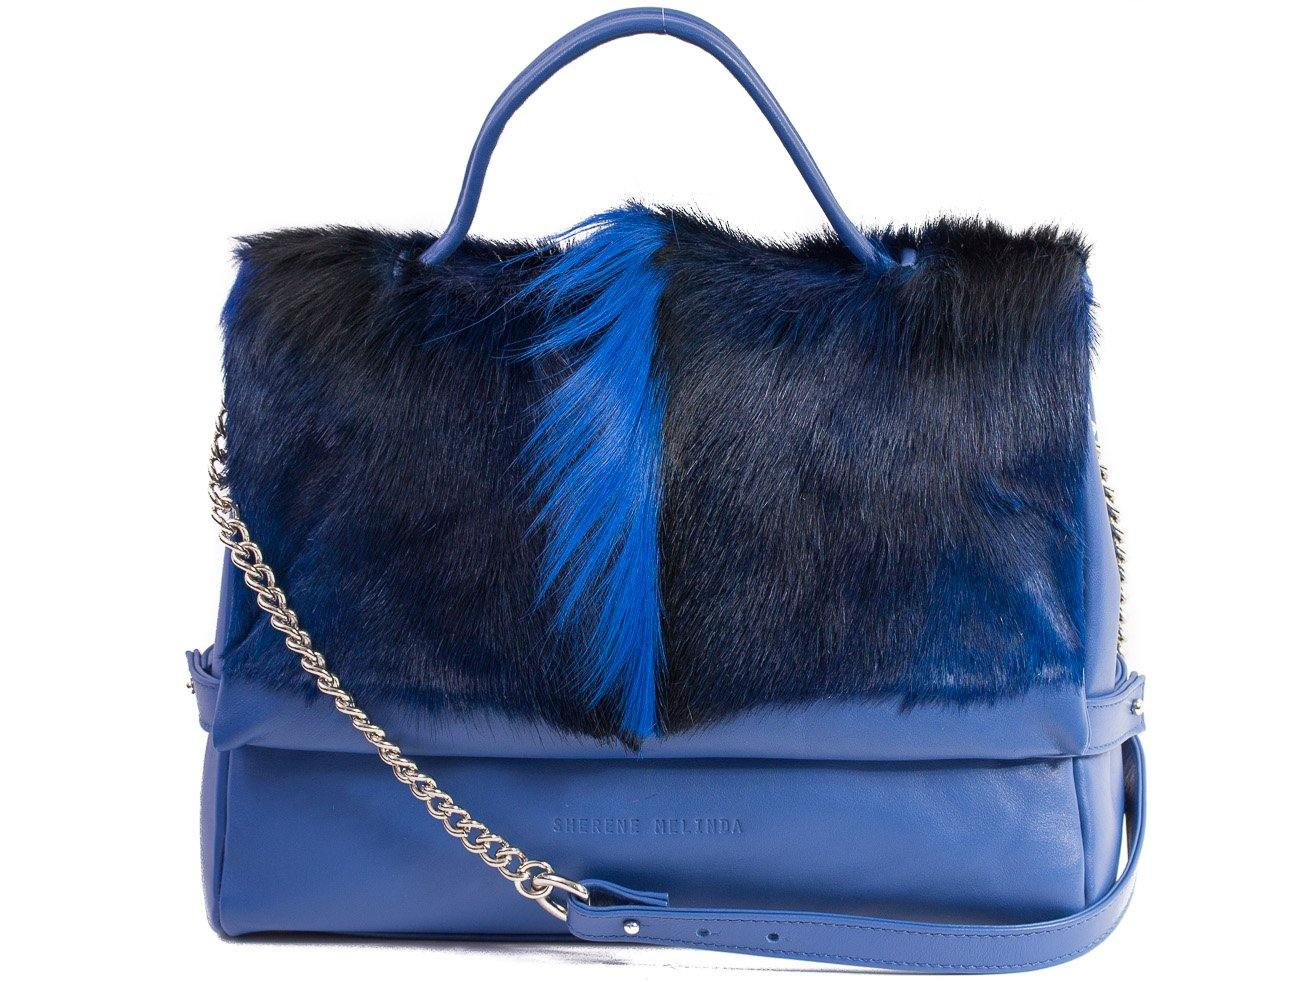 sherene melinda springbok hair-on-hide royal blue leather smith tote bag fan front strap